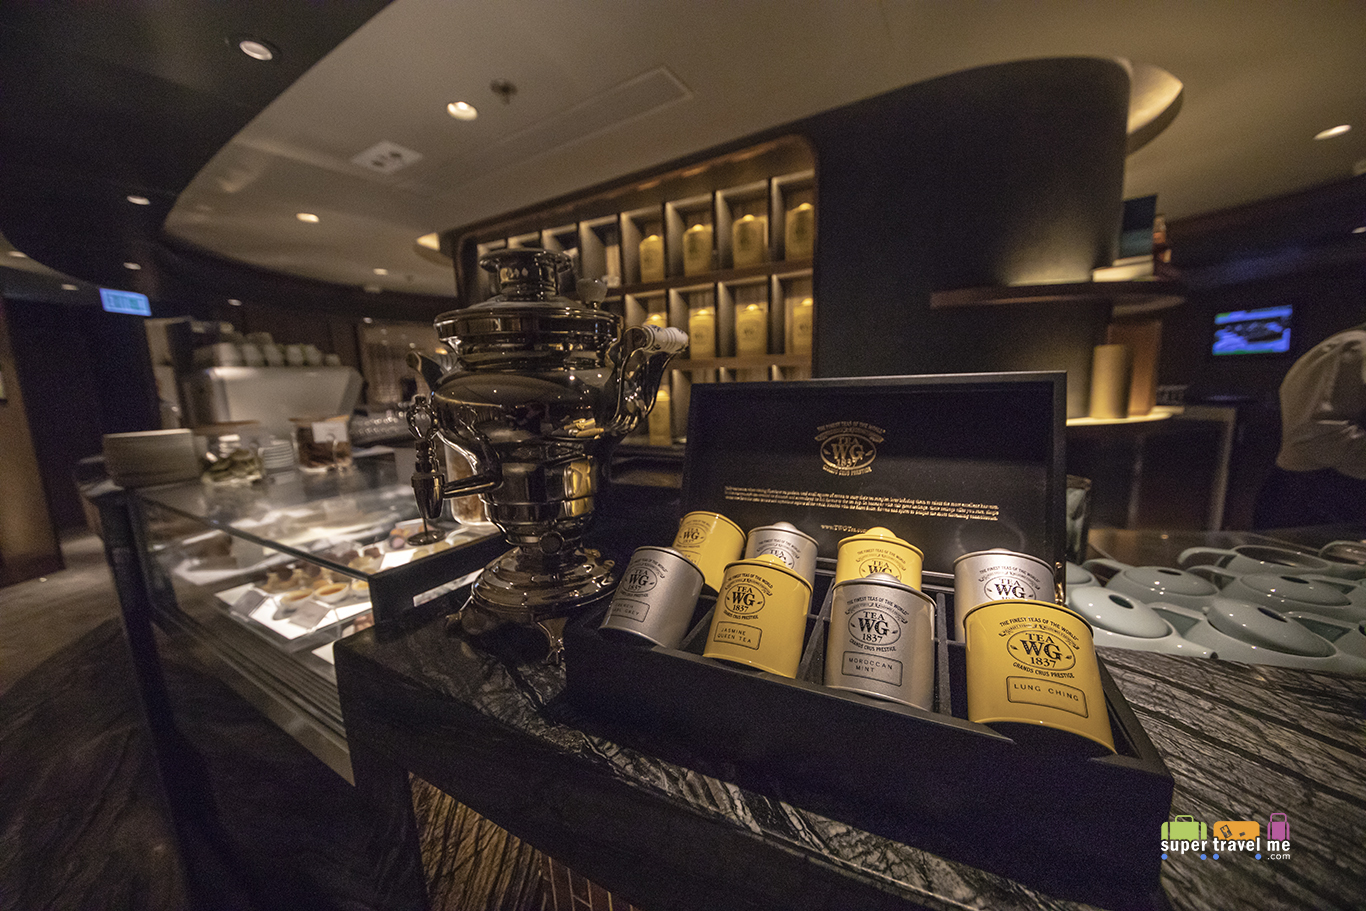 TWG Teas served at the Plaza Premium First Hong Kong Lounge